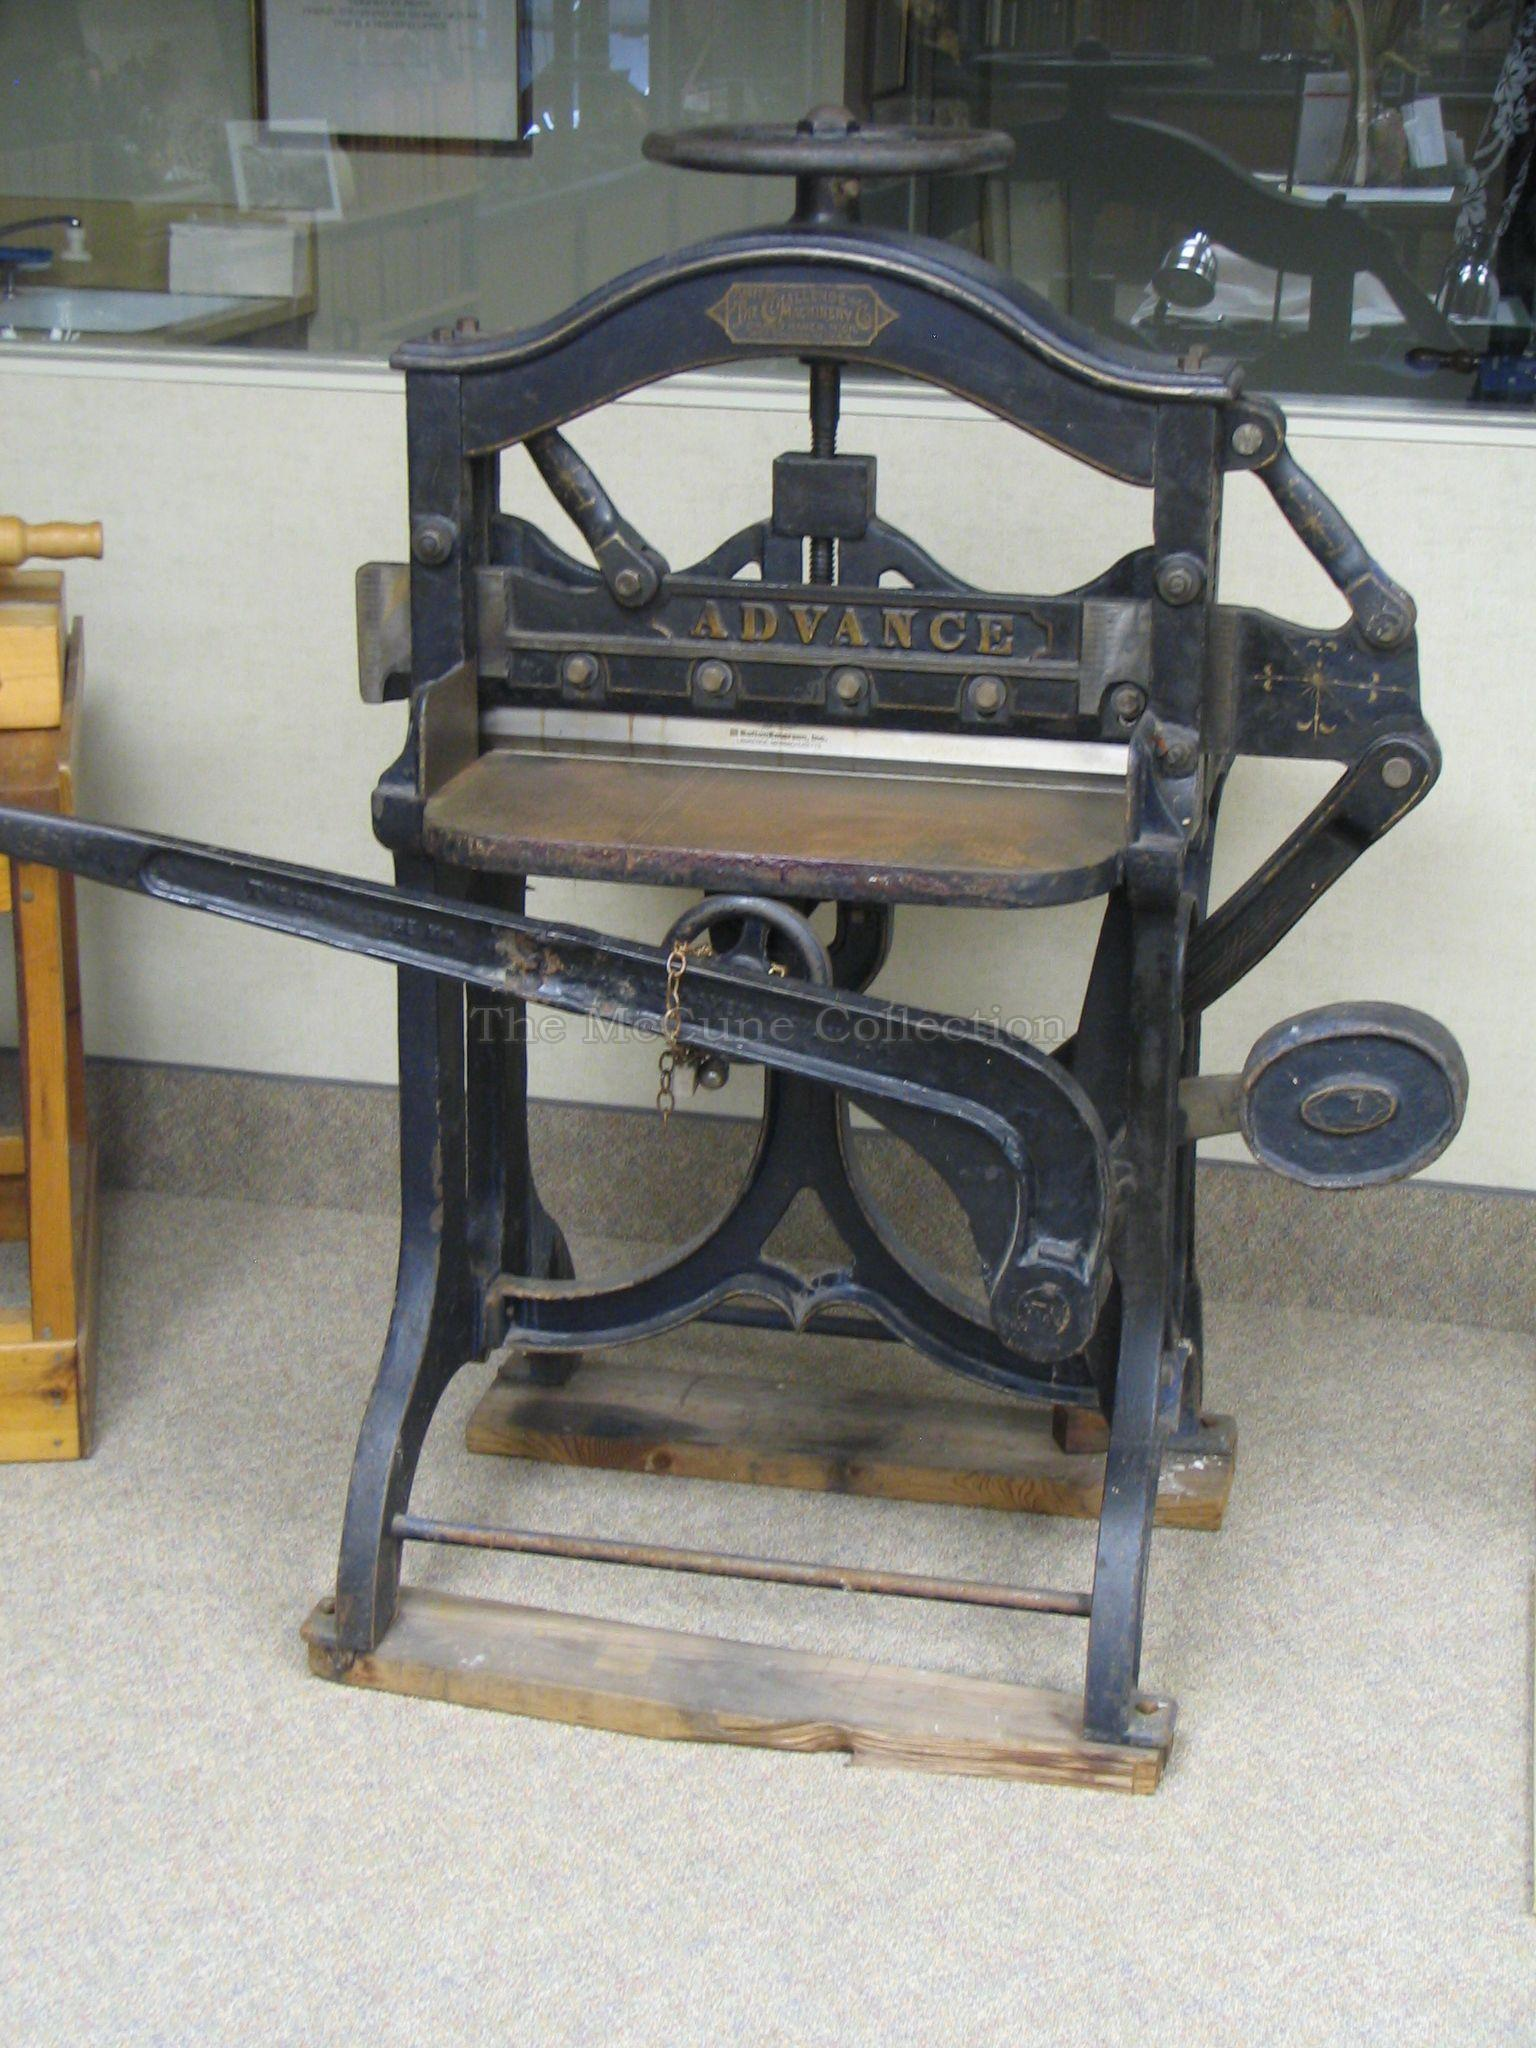 challenge paper cutter Our current inventory of used paper cutters includes manual, electric, and hydraulic models.